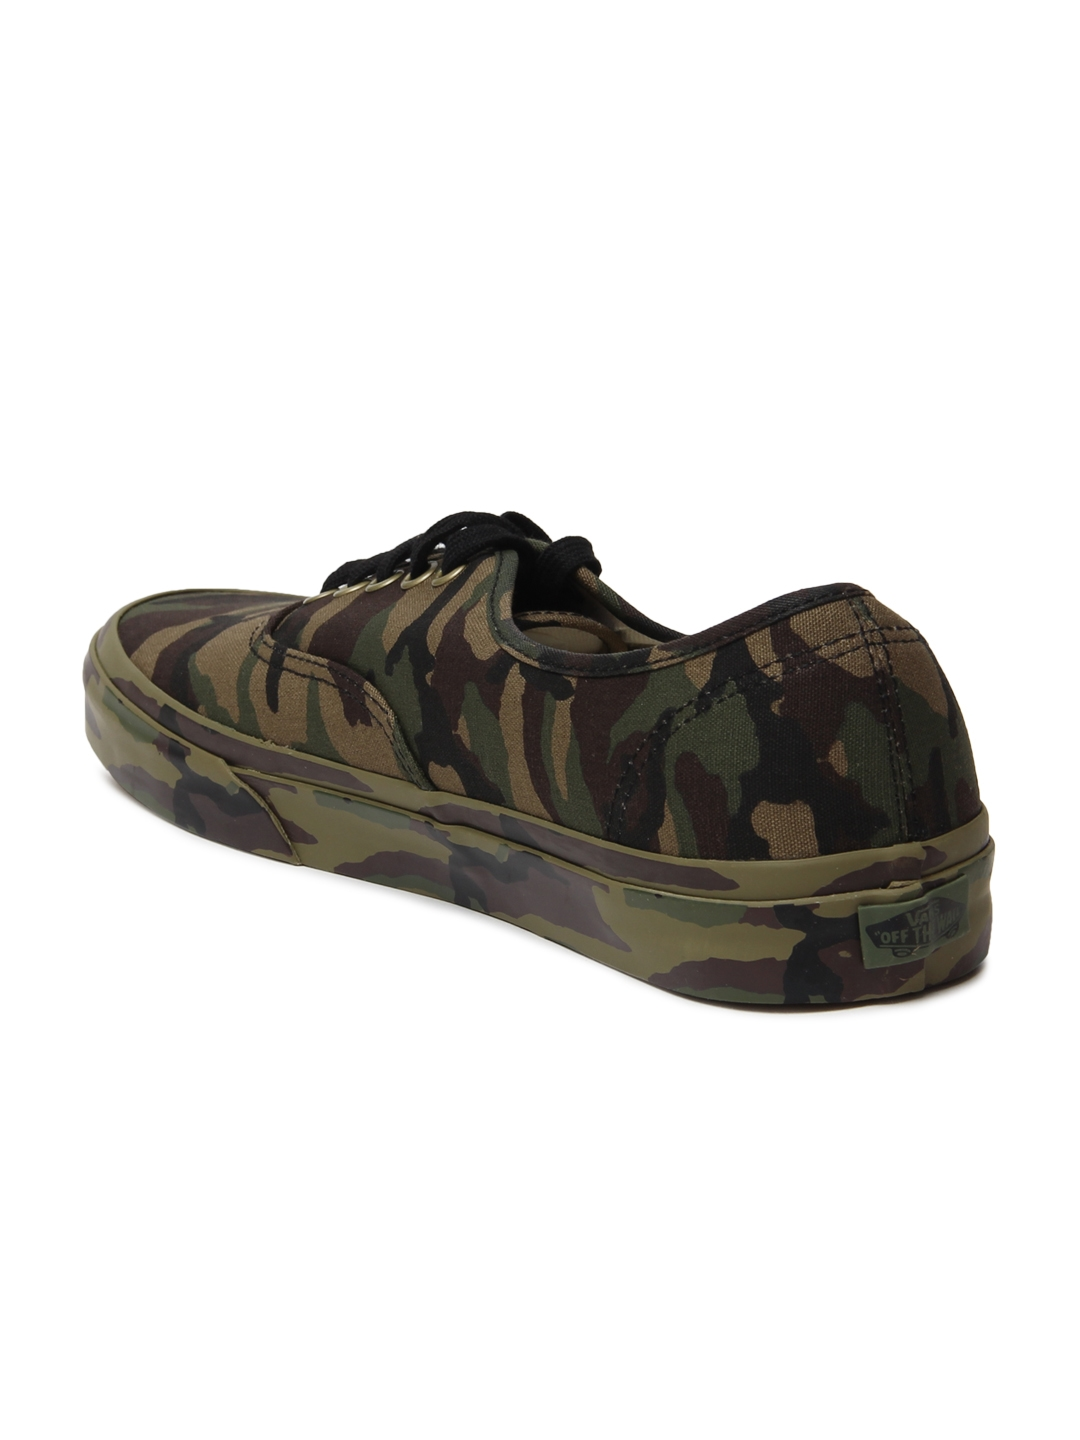 910f65d07ffdb6 Vans Unisex Olive Green   Brown Authentic Camouflage Print Sneakers